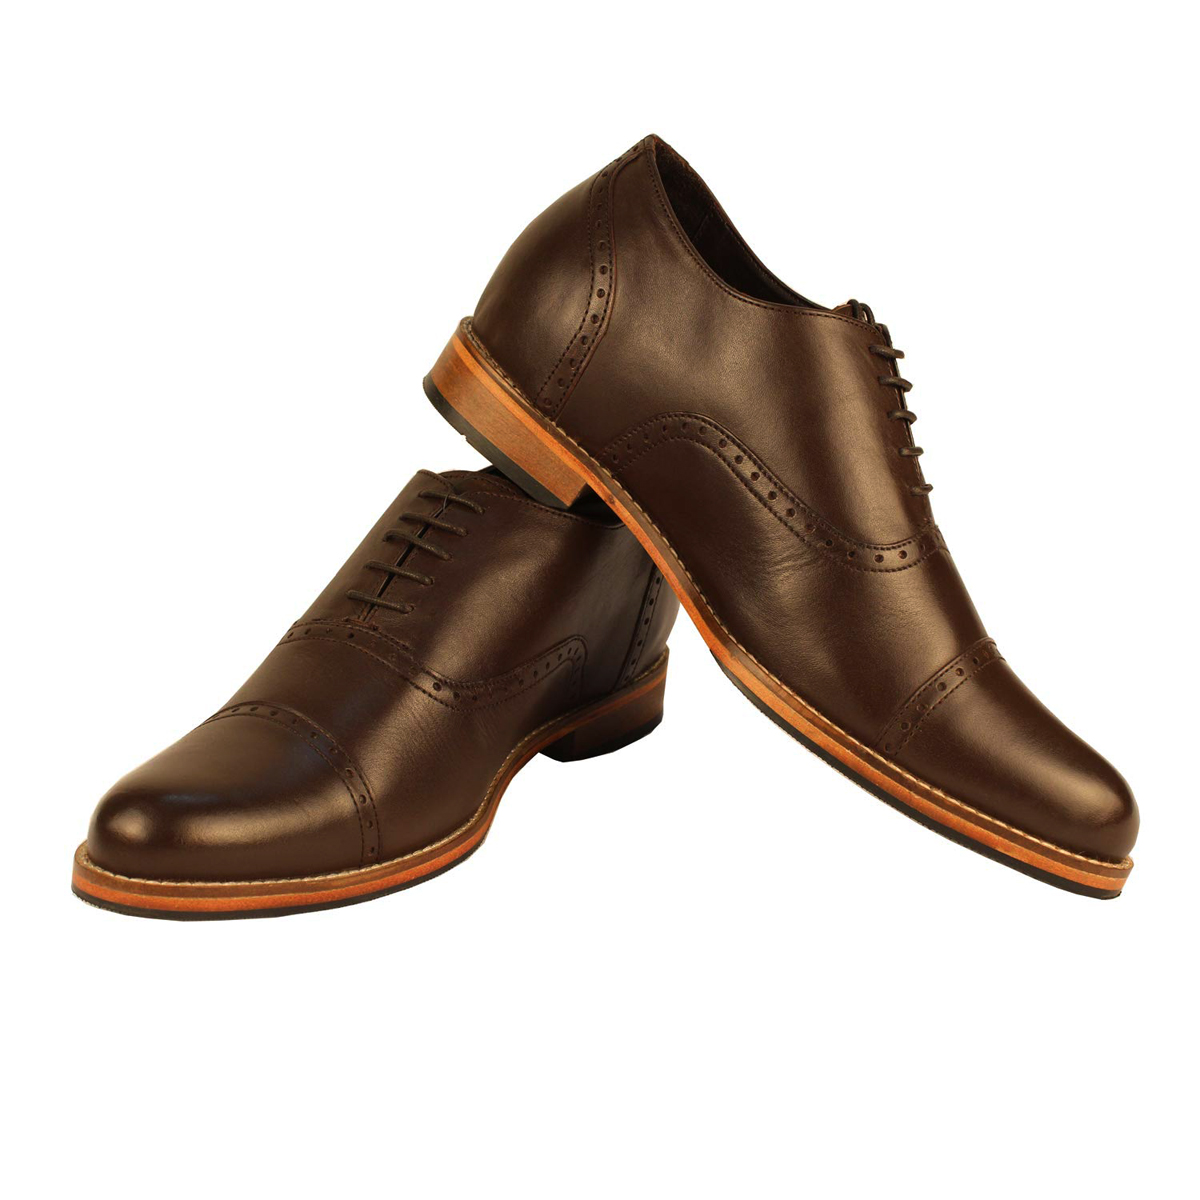 Elevato Height Increasing Brown Oxford Shoes